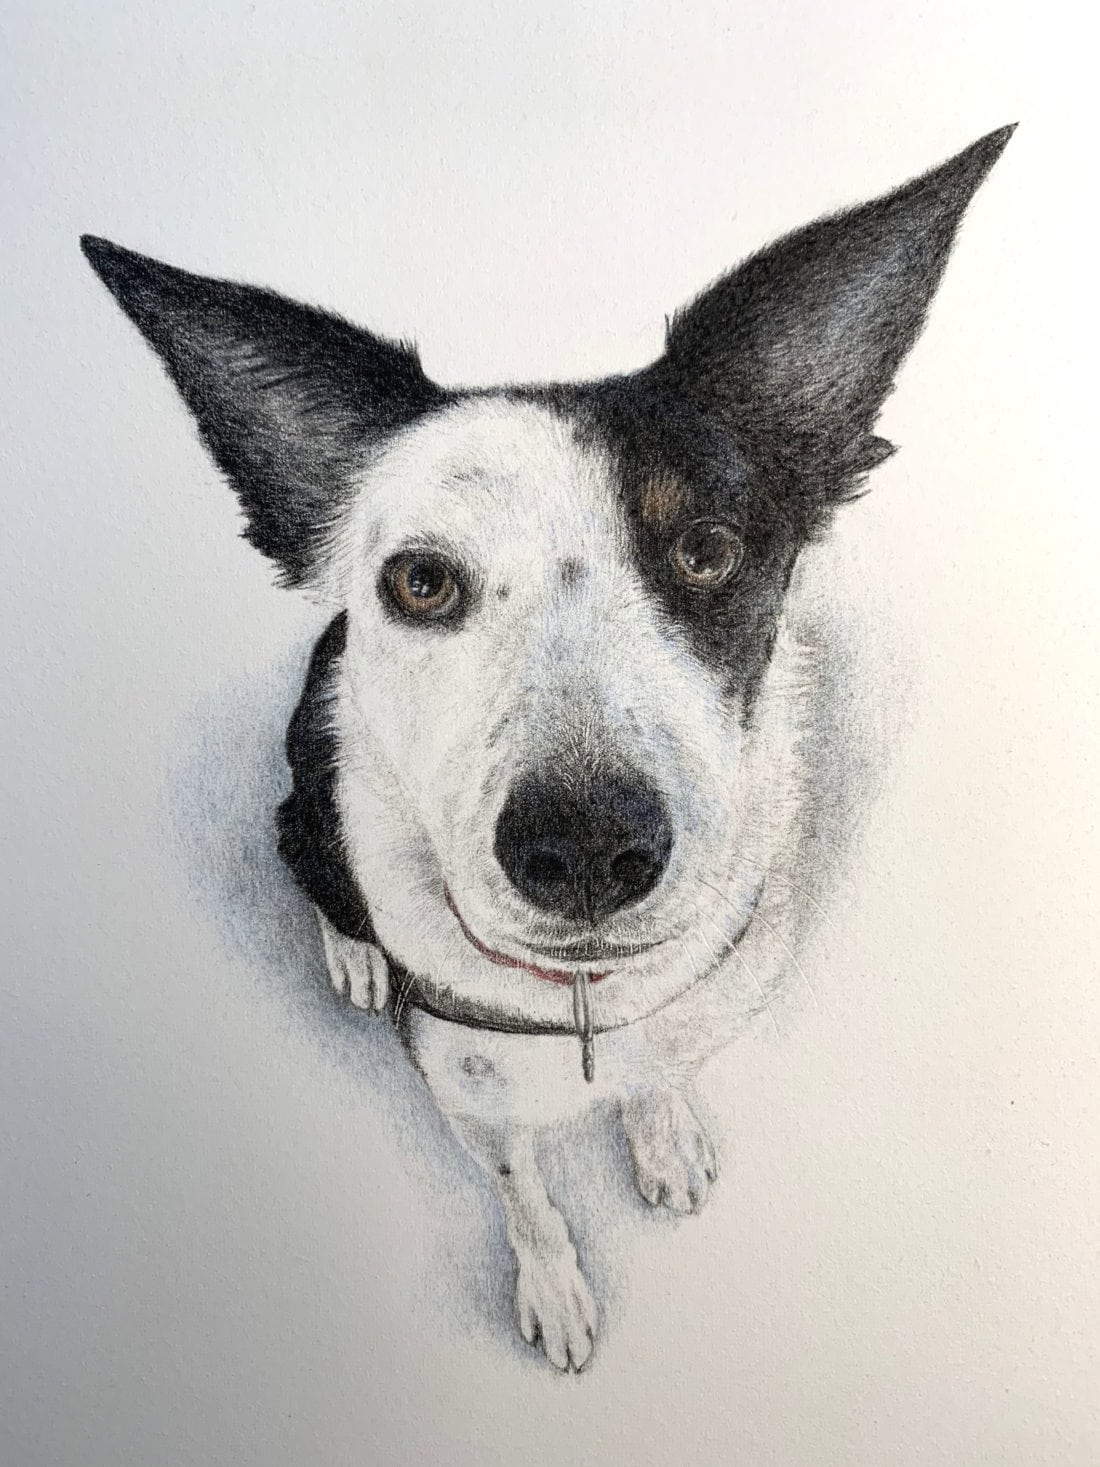 Thula sketched by Libby Redding